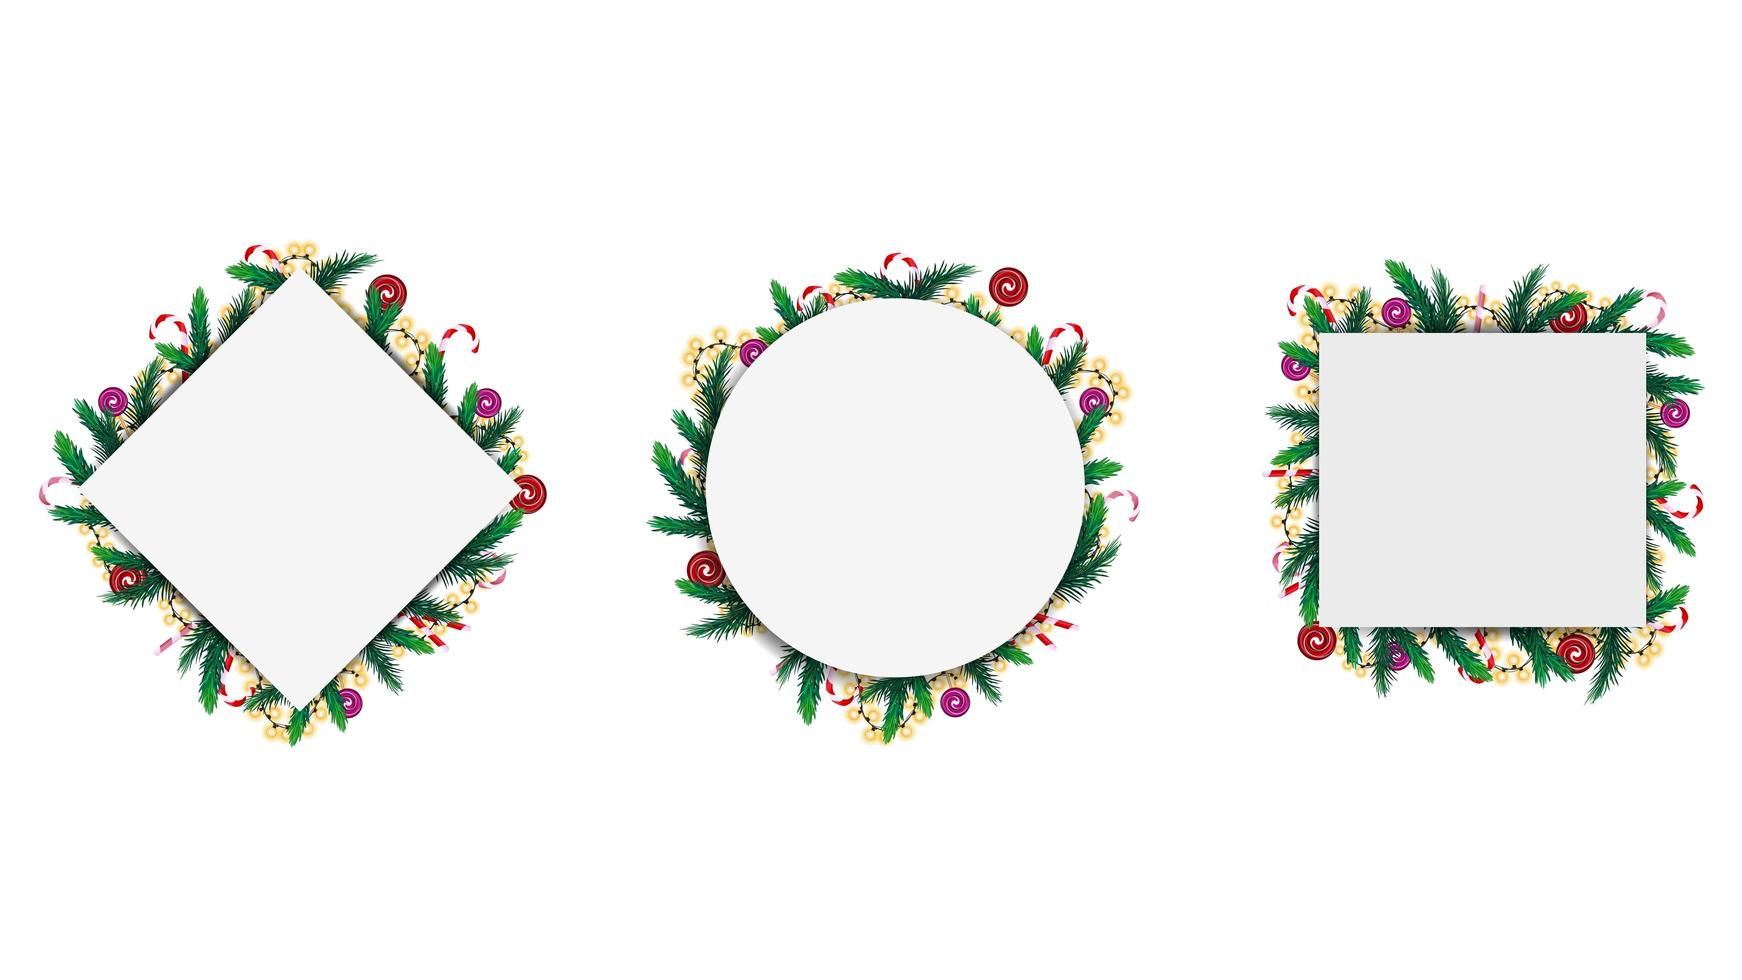 Set of geometric frames made of Christmas tree branches and garlands isolated on a white background. vector